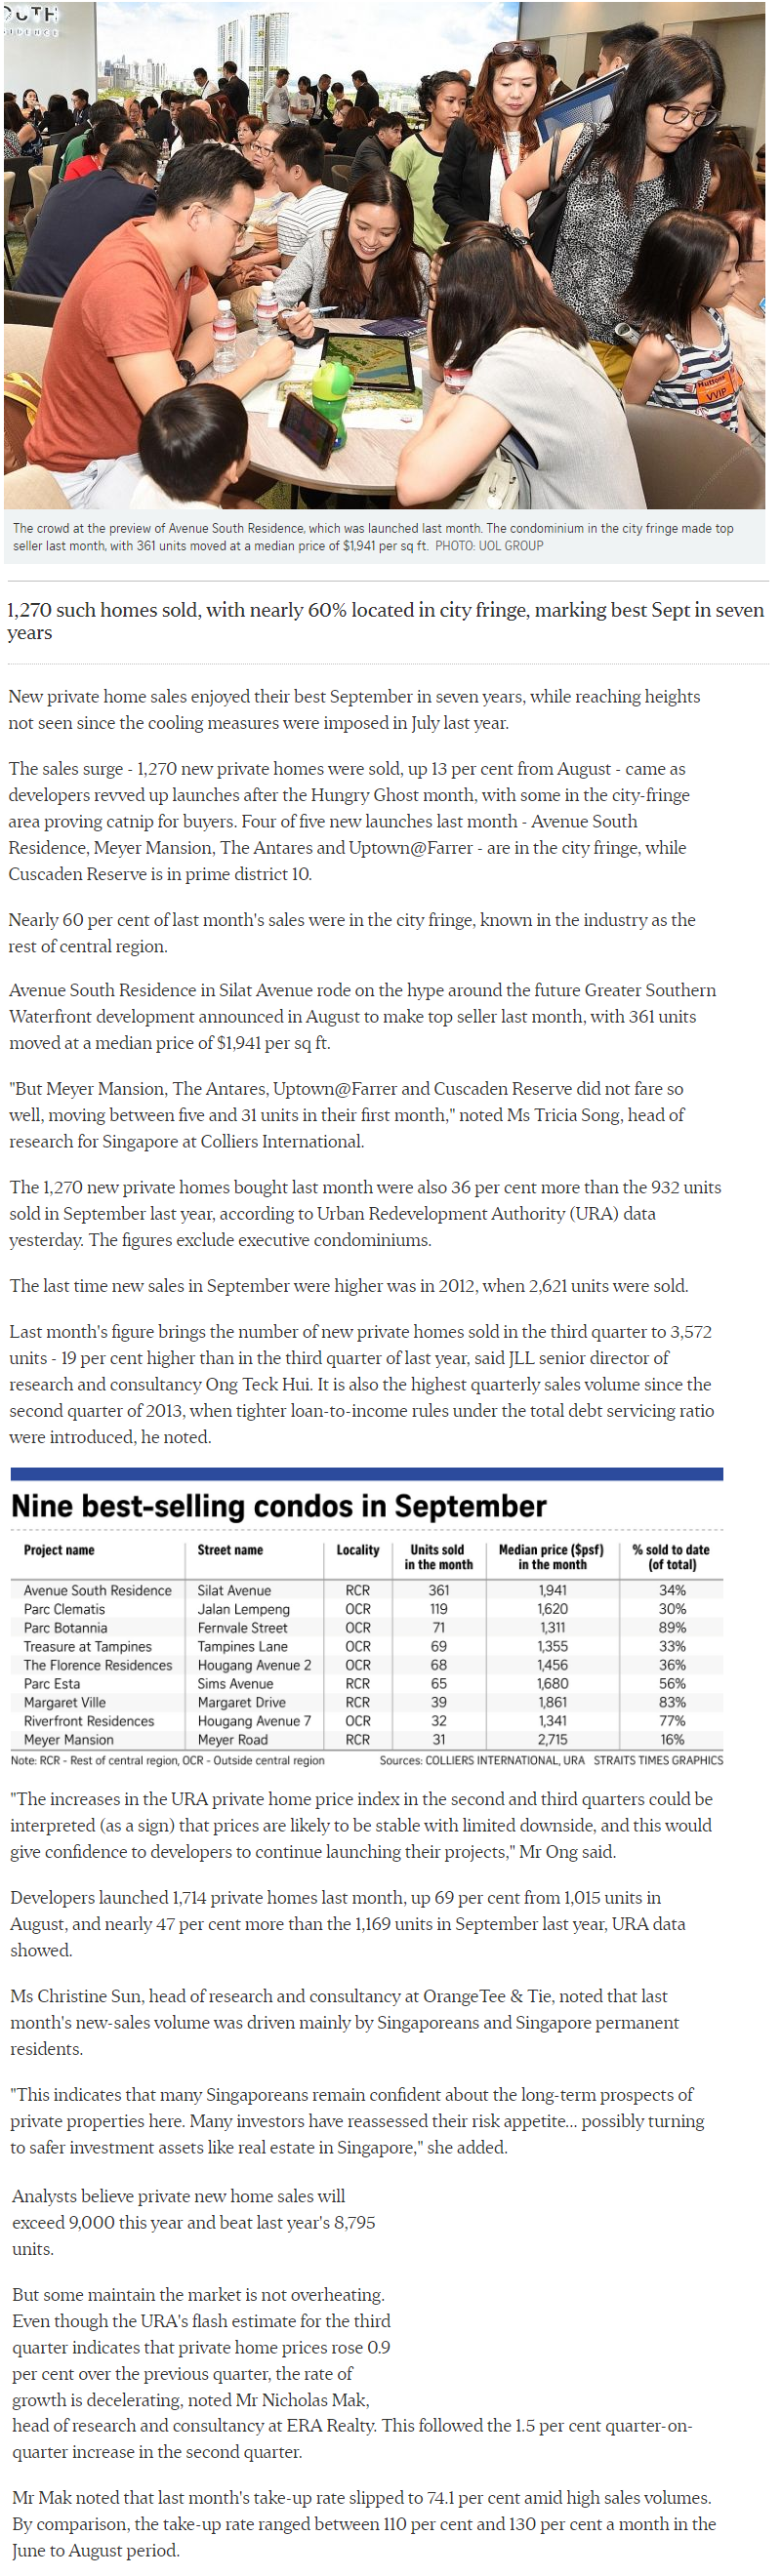 Klimt Cairnhill - New private Home Sales Hit A Hight In September